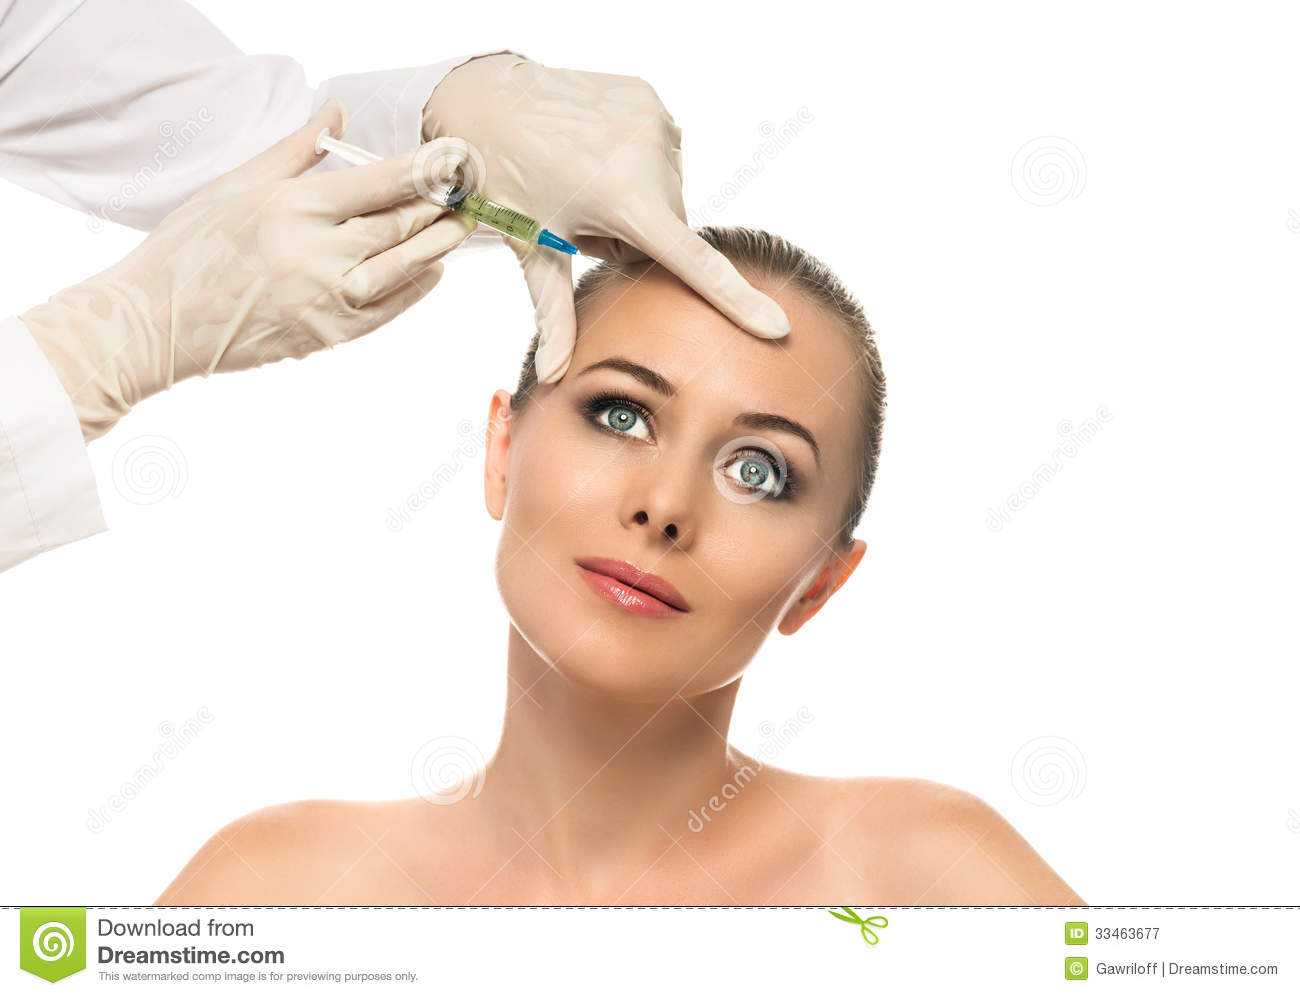 of cosmetic injection of botox to the pretty female face